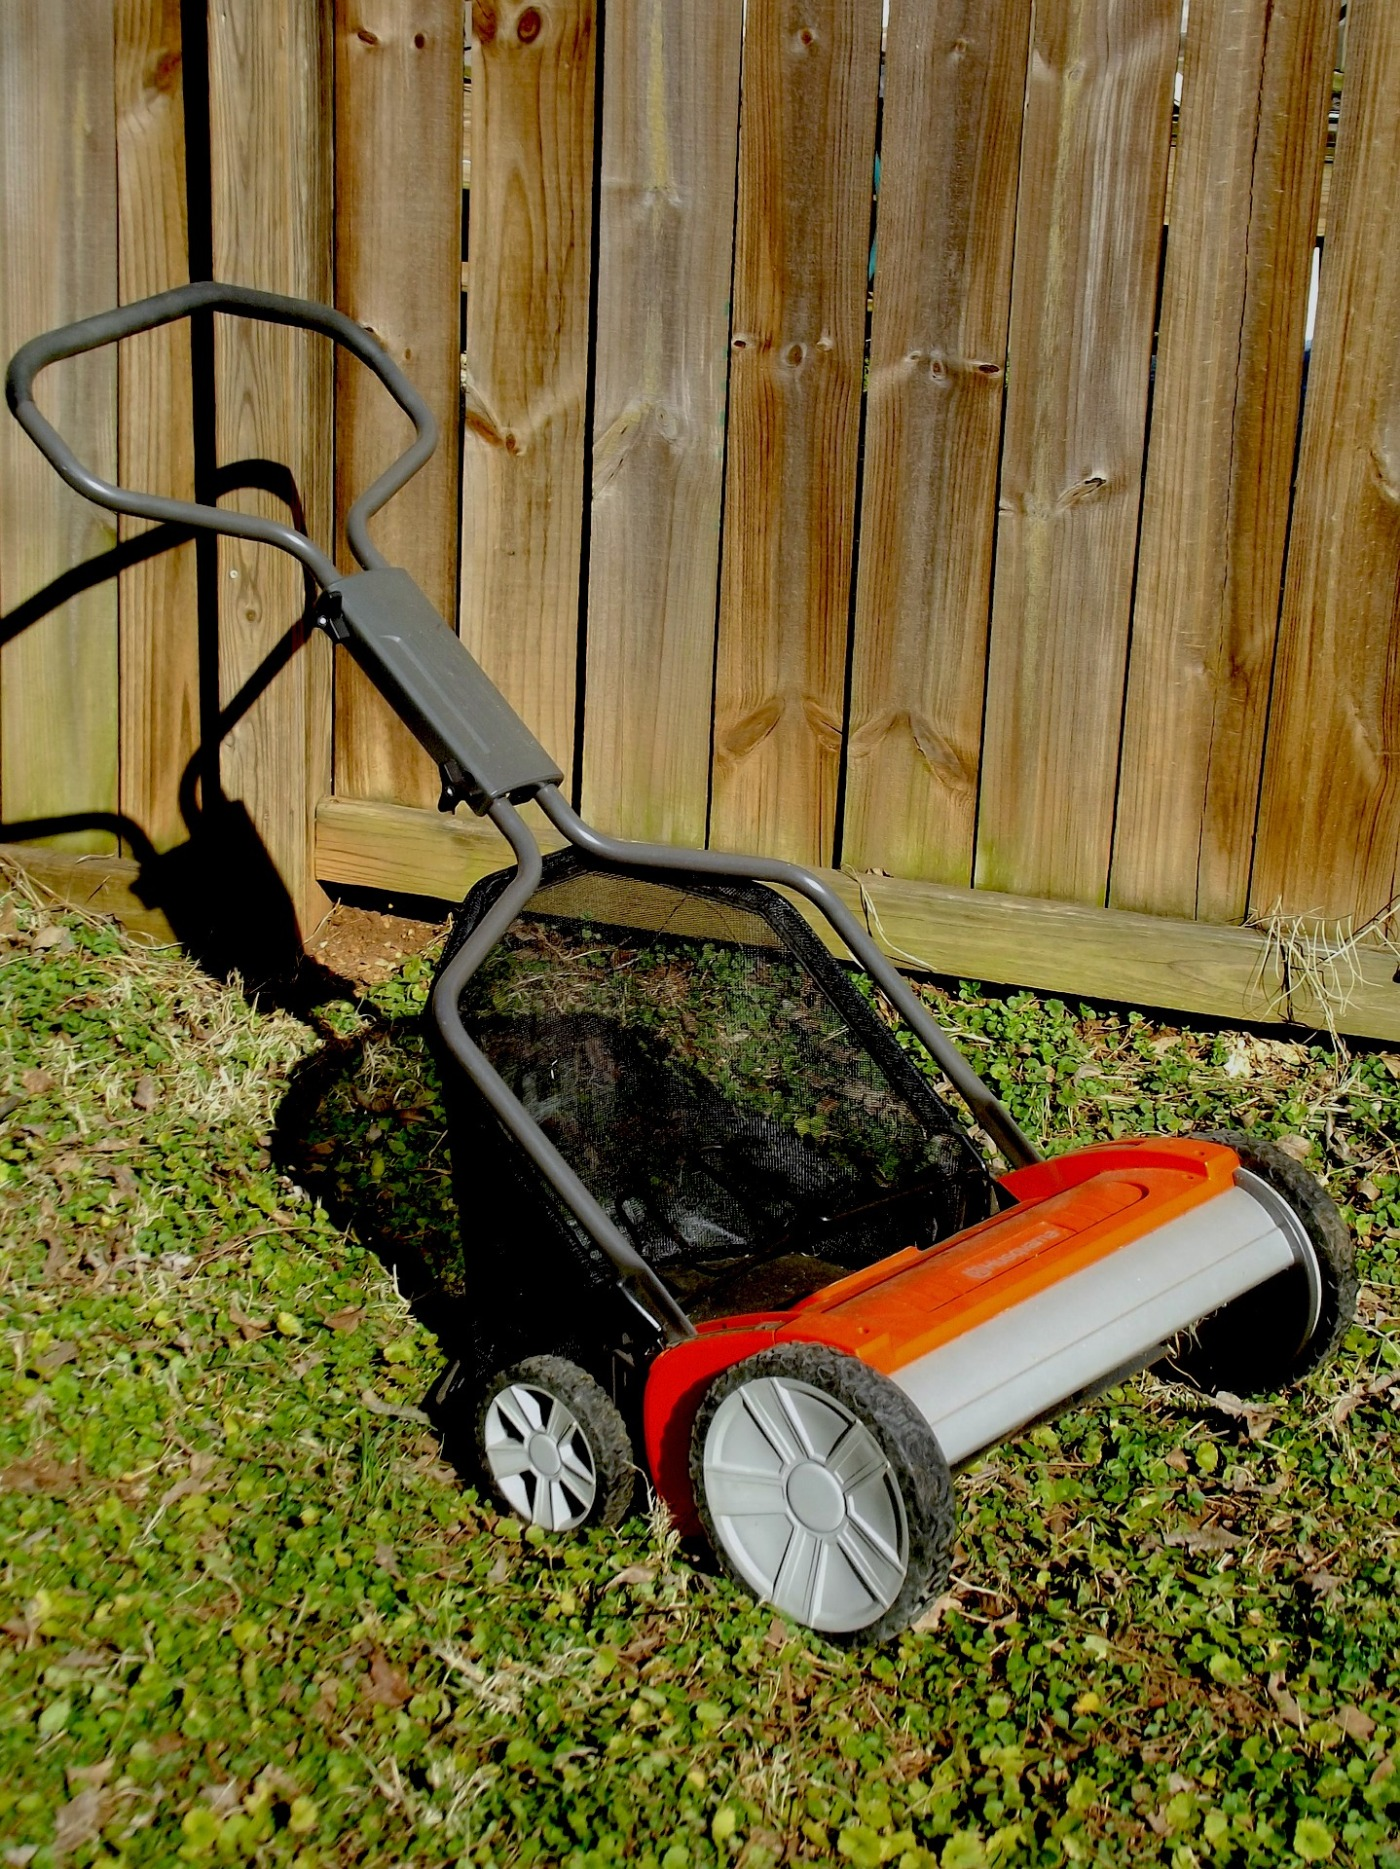 Reel mower, lawn mower, hand push